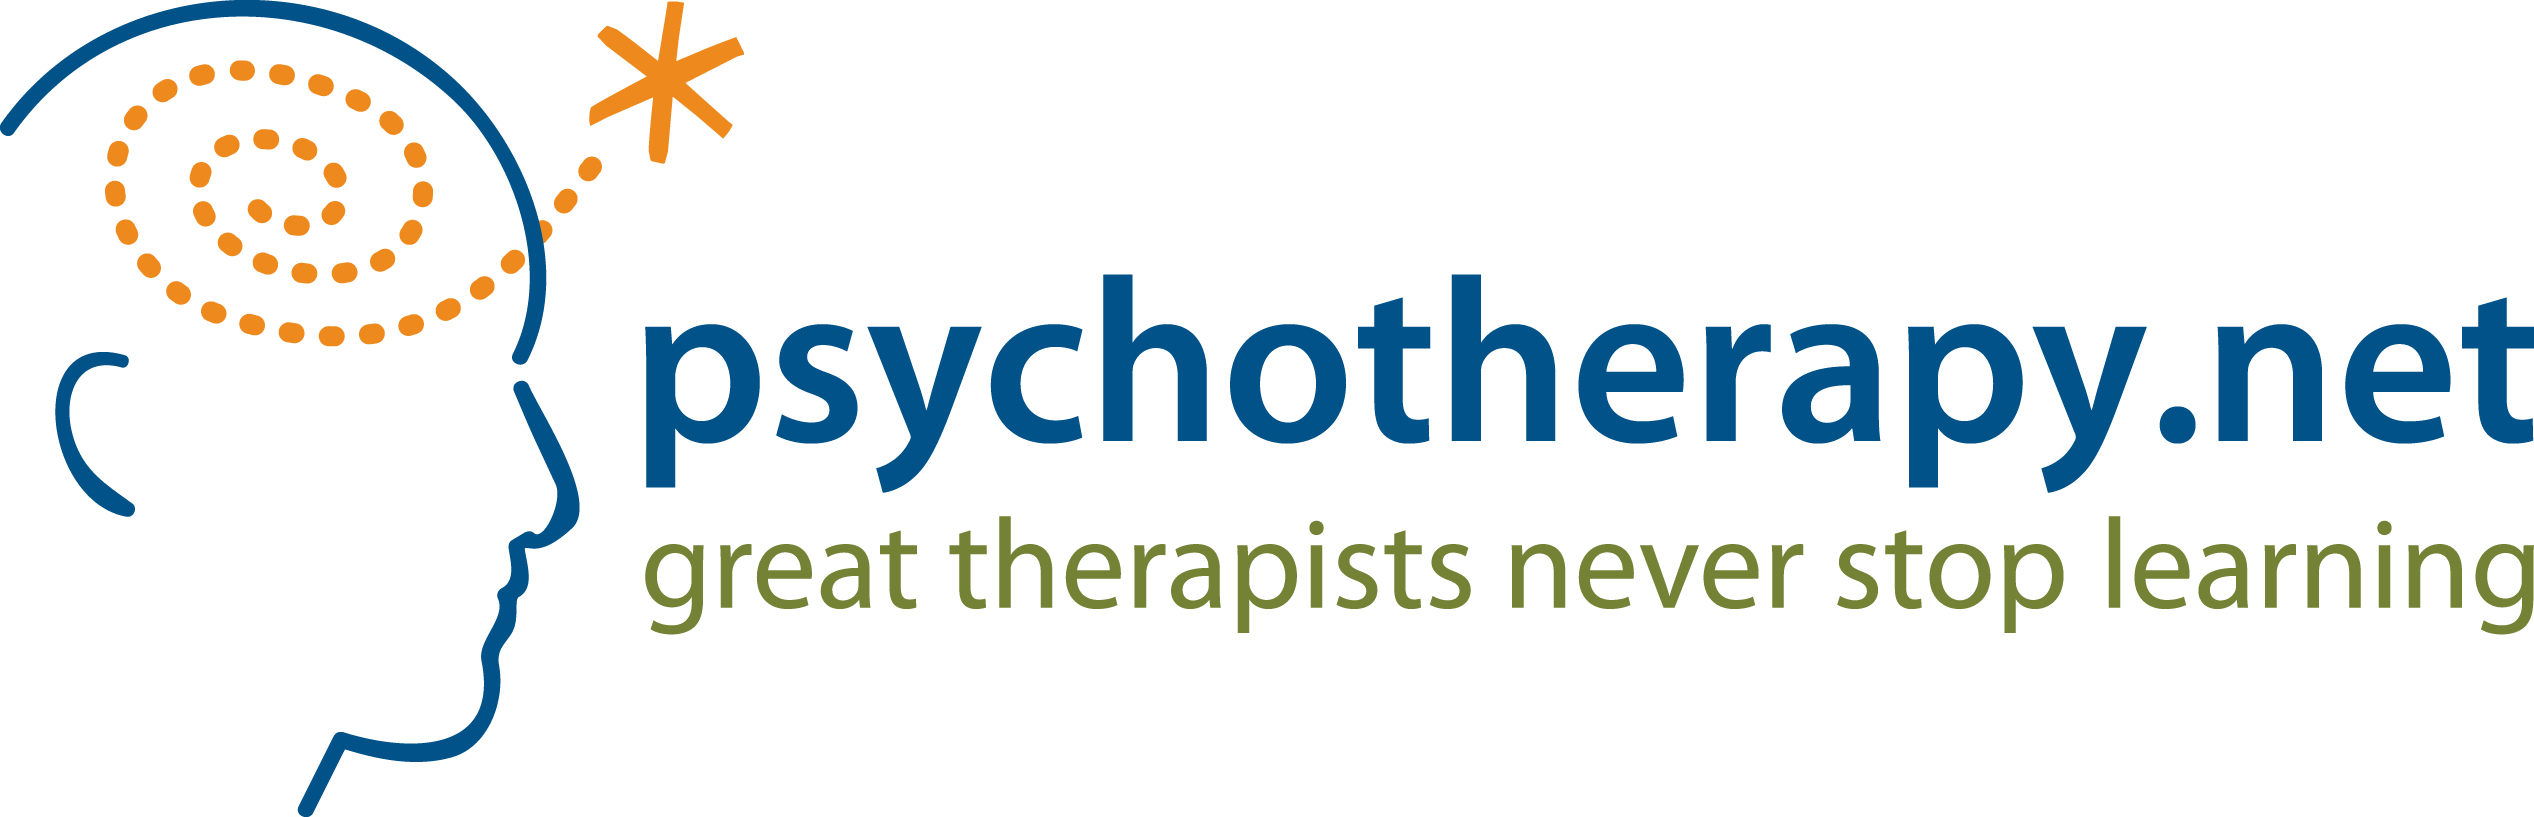 psychotherapy.net graphic